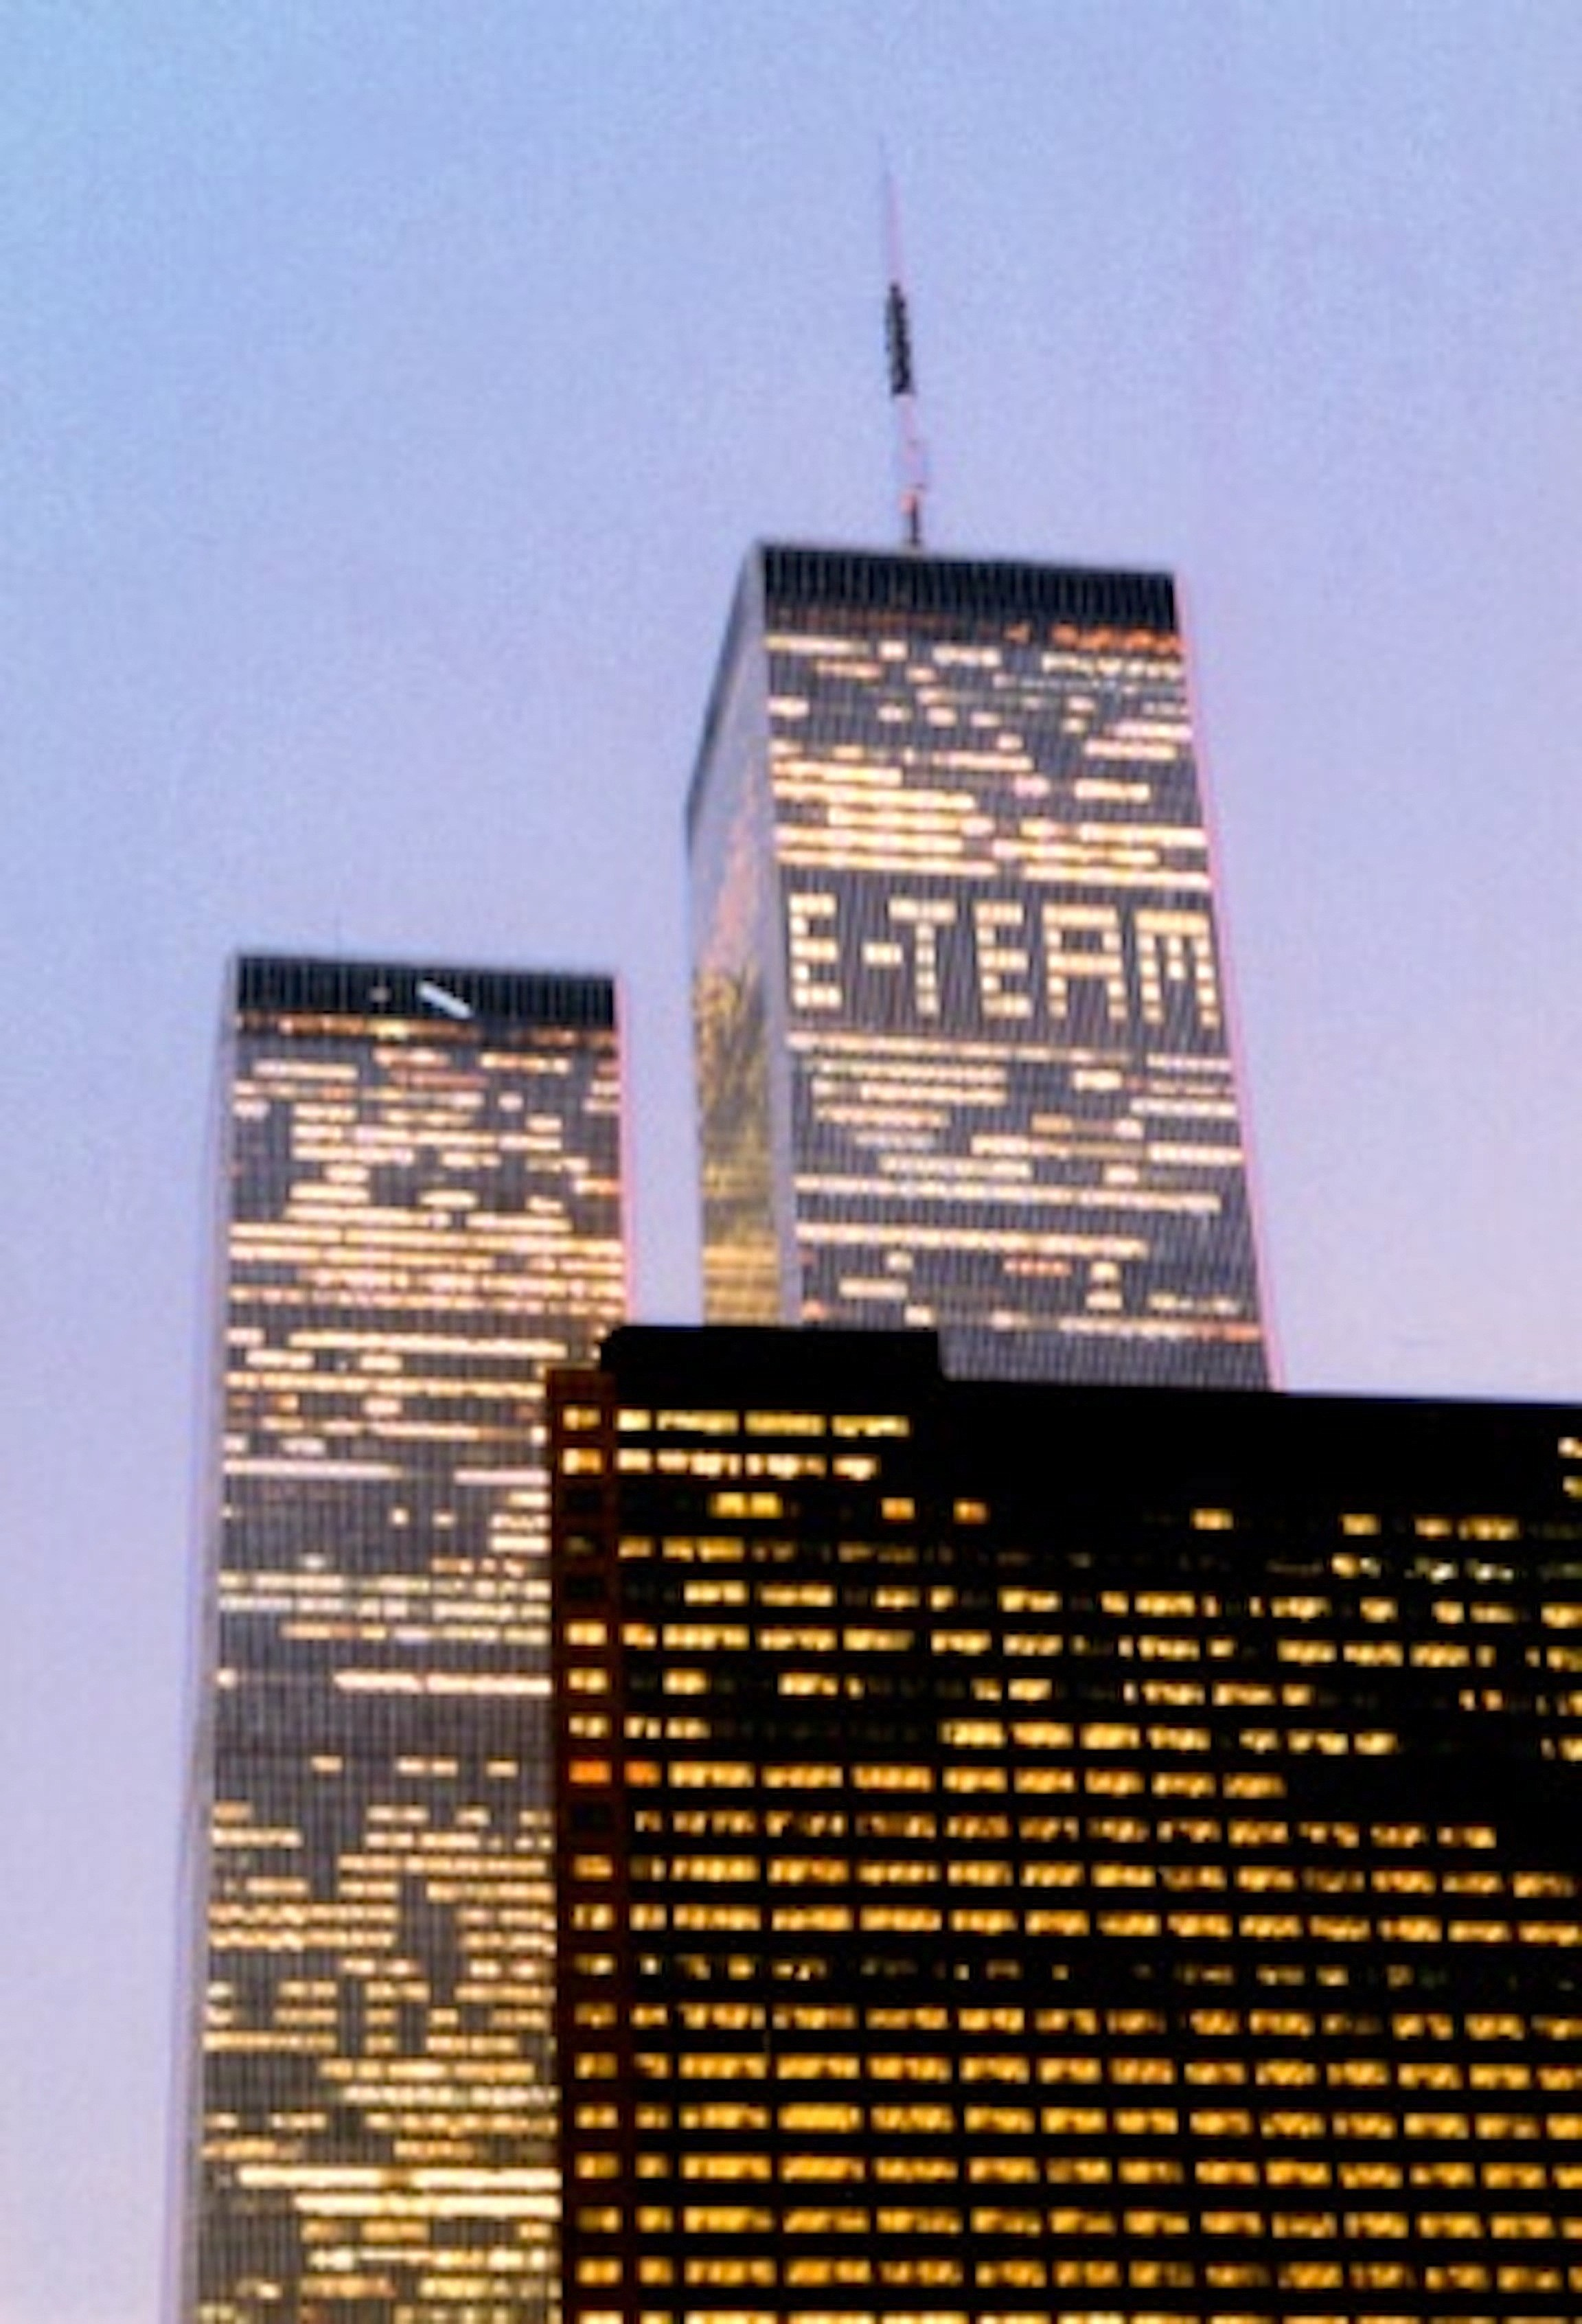 E-Team (Hajoe Moderegger, Franziska Lamprecht, Dan Seiple) 127 Illuminated Windows March 2001